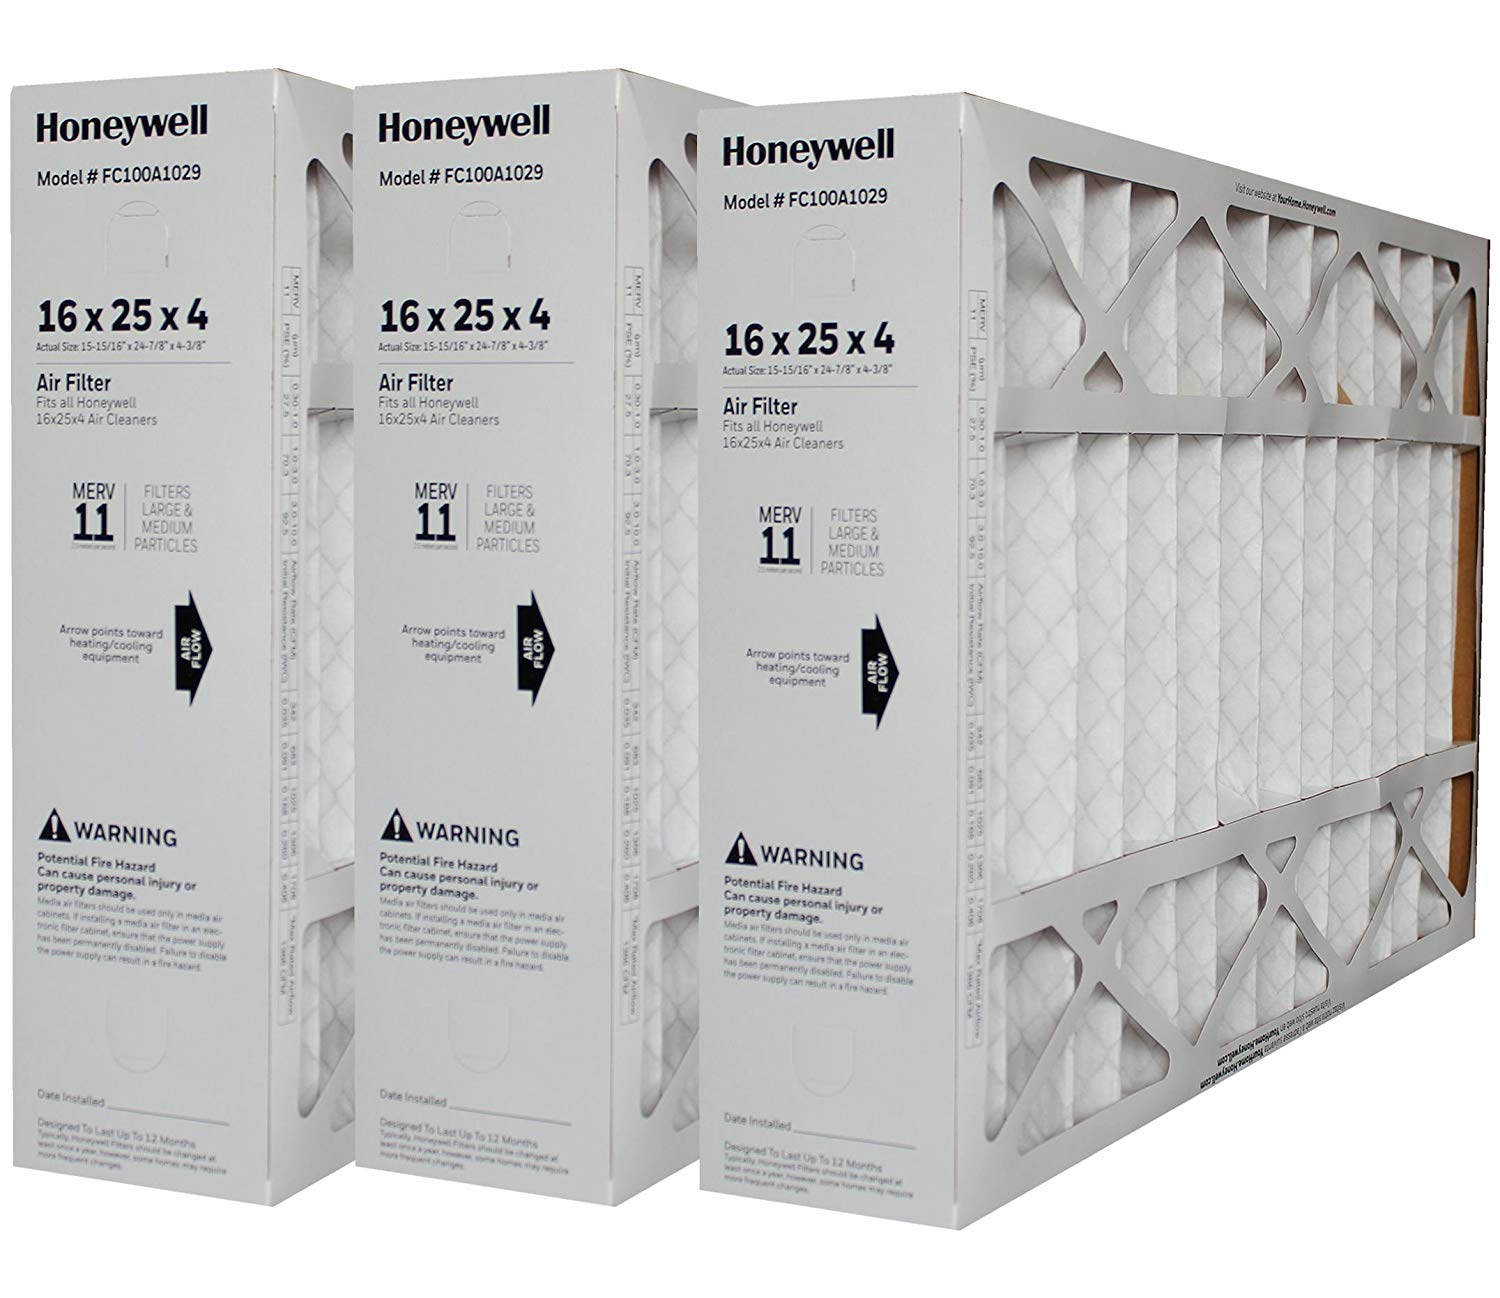 "Genuine Honeywell 16 x 25 Part # FC100A1029 MERV 11 Size 15 7/8"" x 24 3/4"" x 4 3/8"" Case of 3"